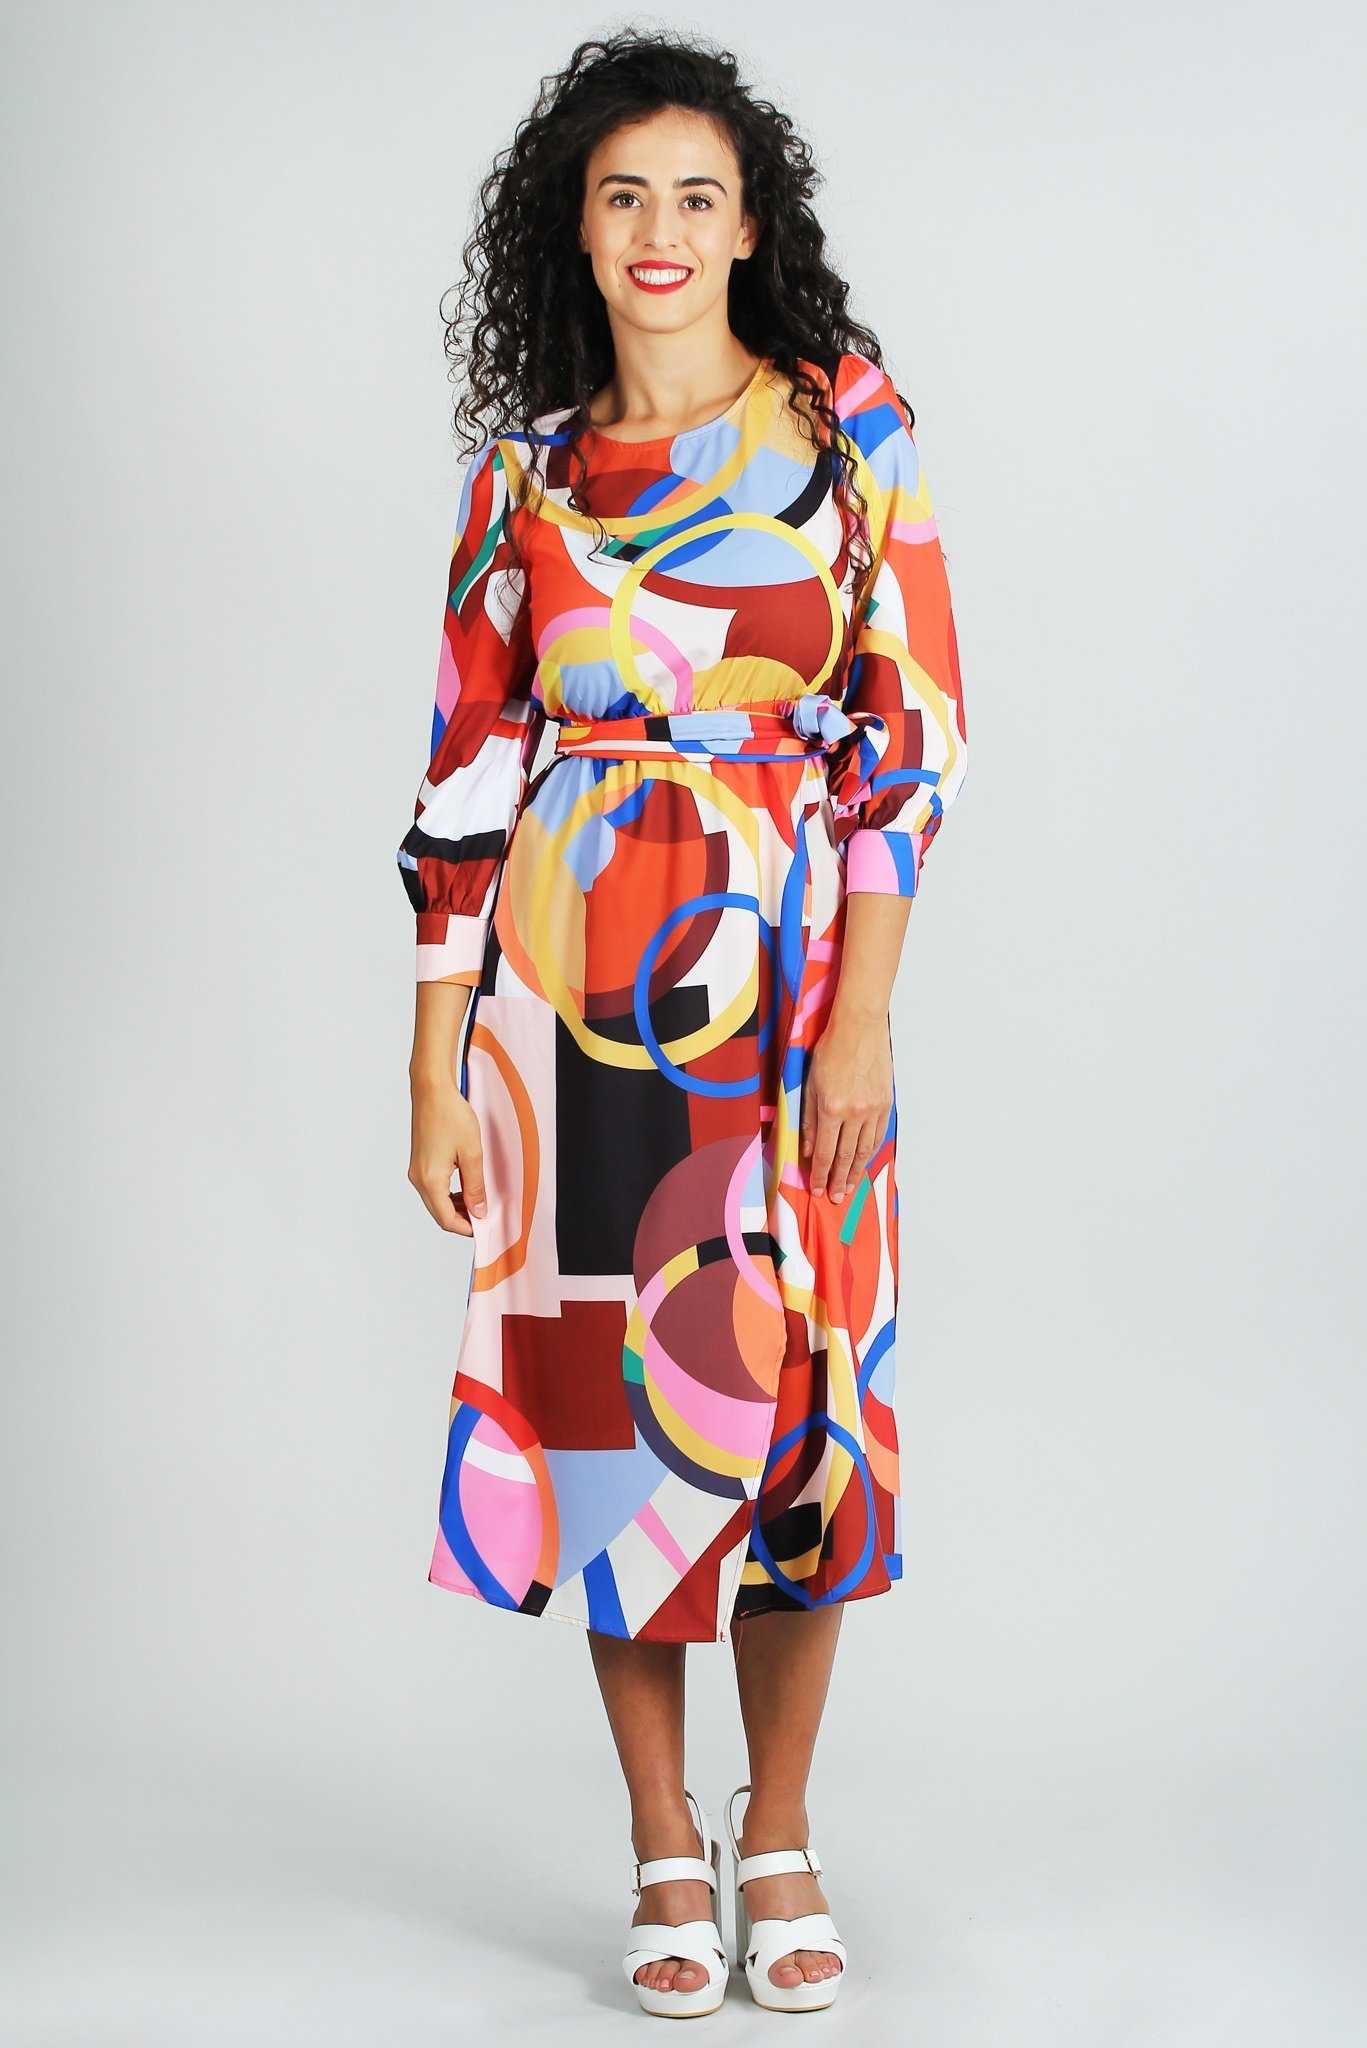 Cara Multicolored Dress | Raw Orange